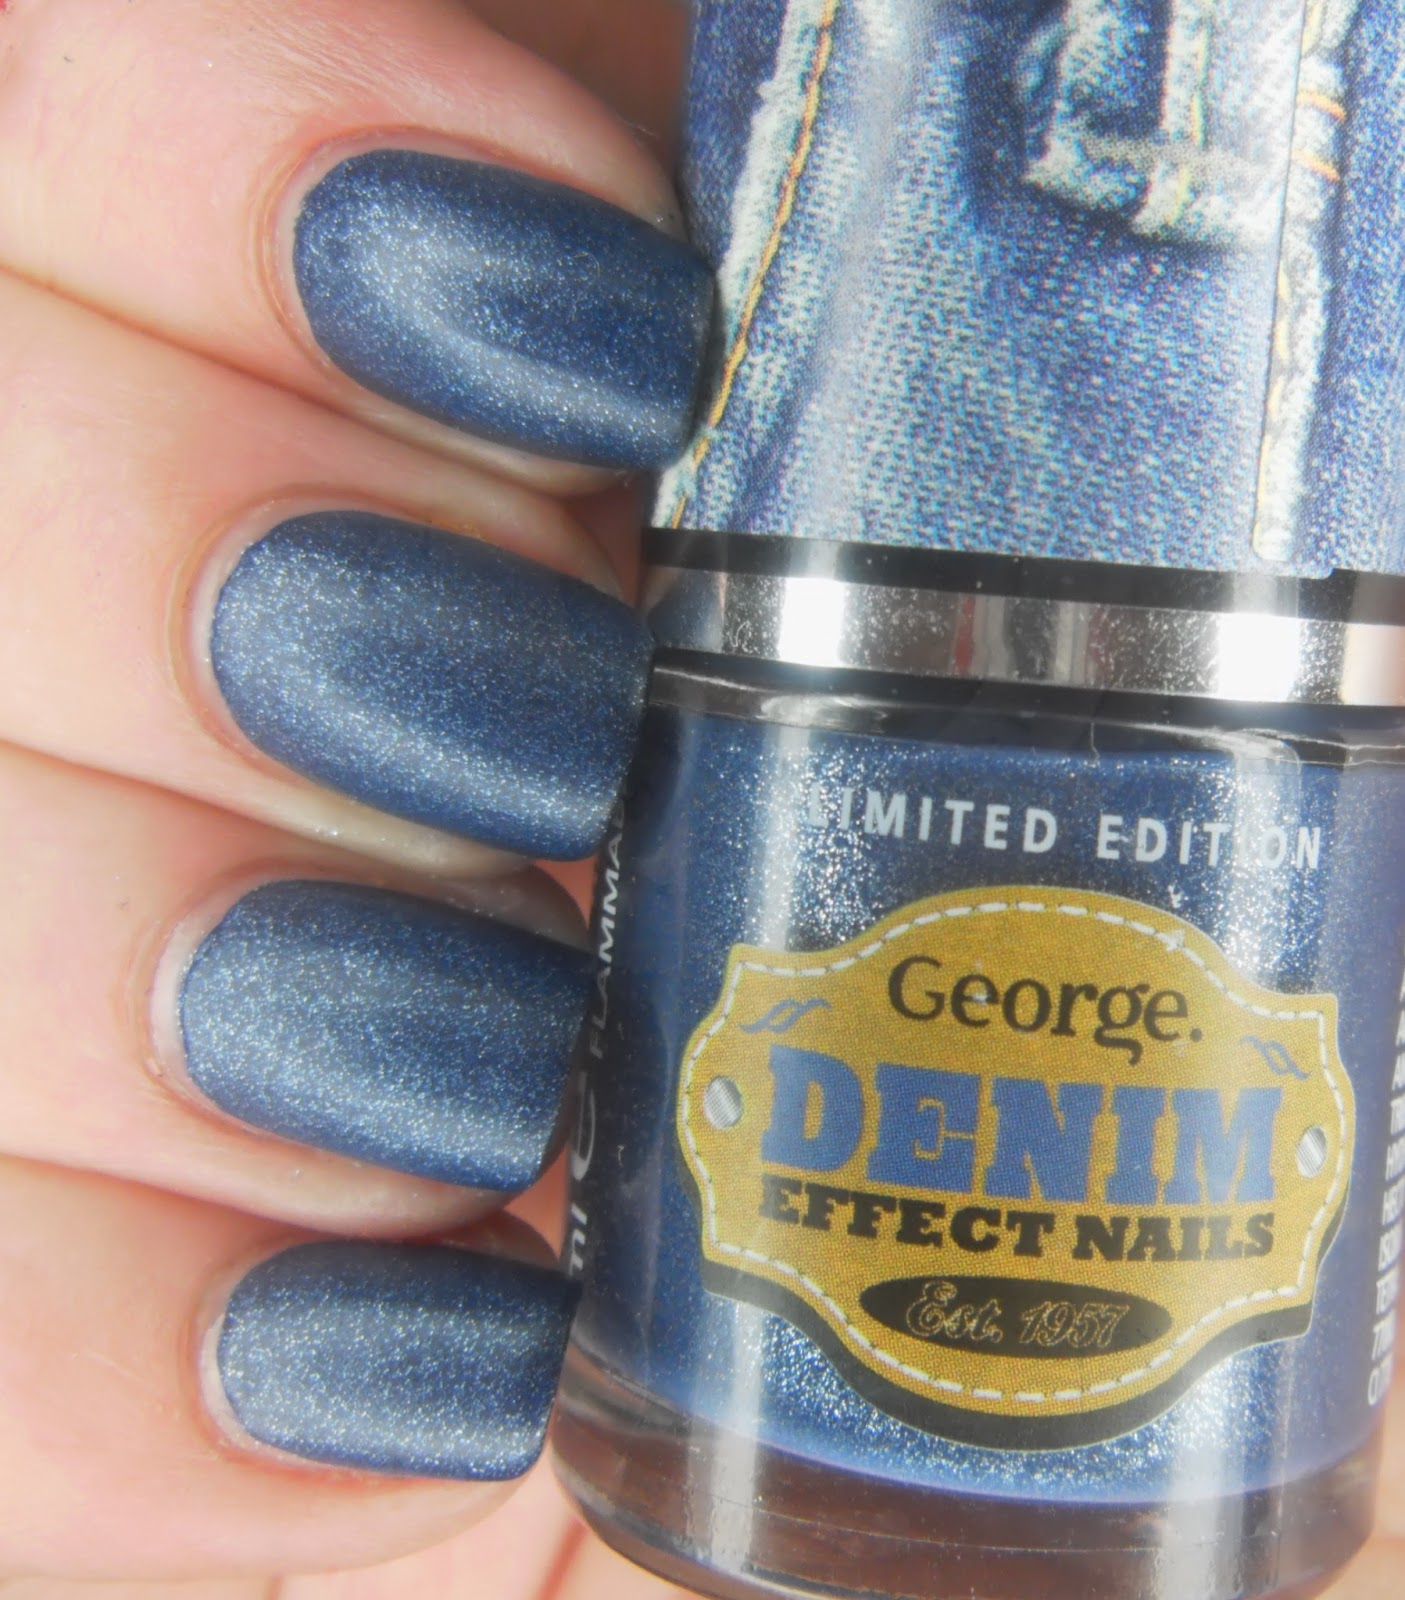 SpecialGirl Nails: Denim Effect Nail Polish...From Asda?!